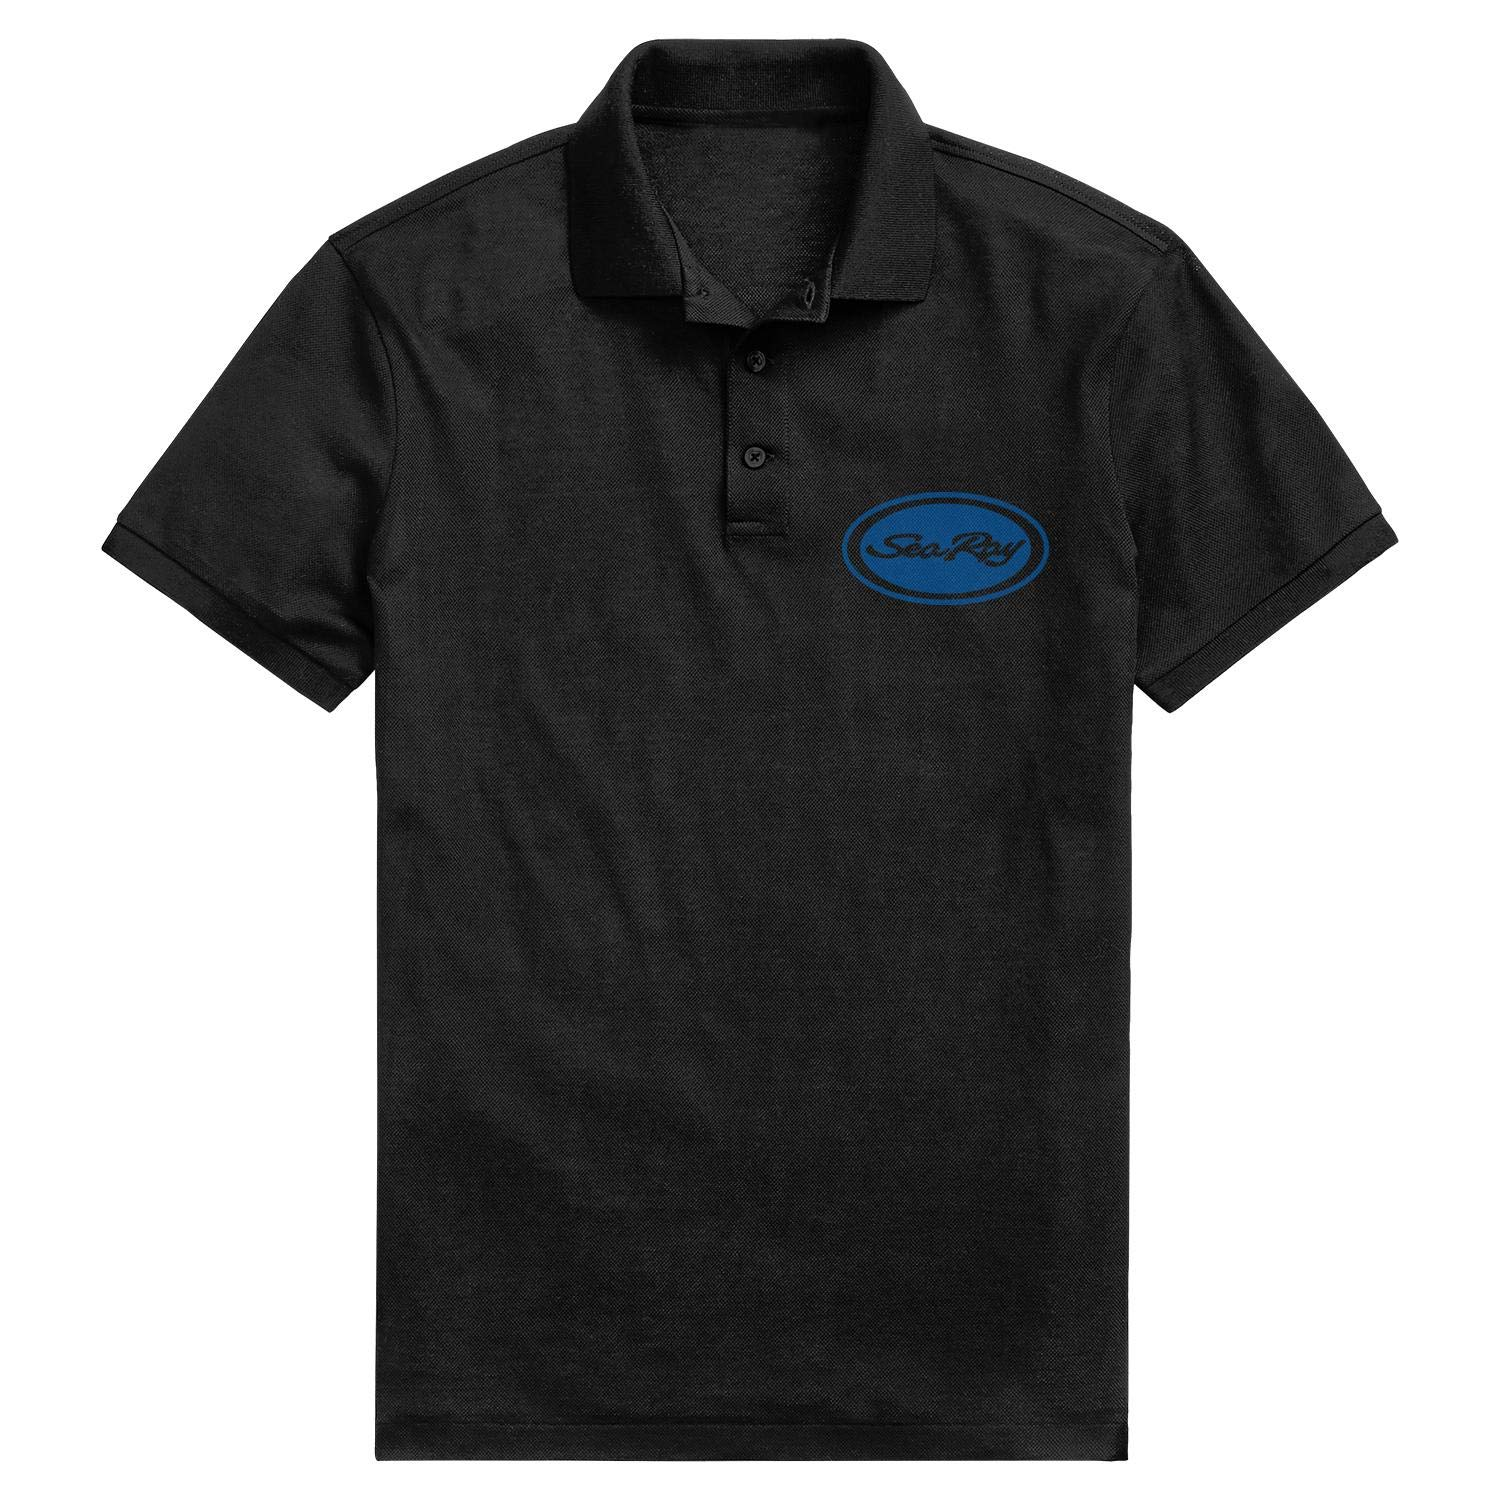 Mens Quick-Dry Pique Polo T Shirt Fit Sea Ray Logo Circle Blue Adjustable Office Short-Sleeves